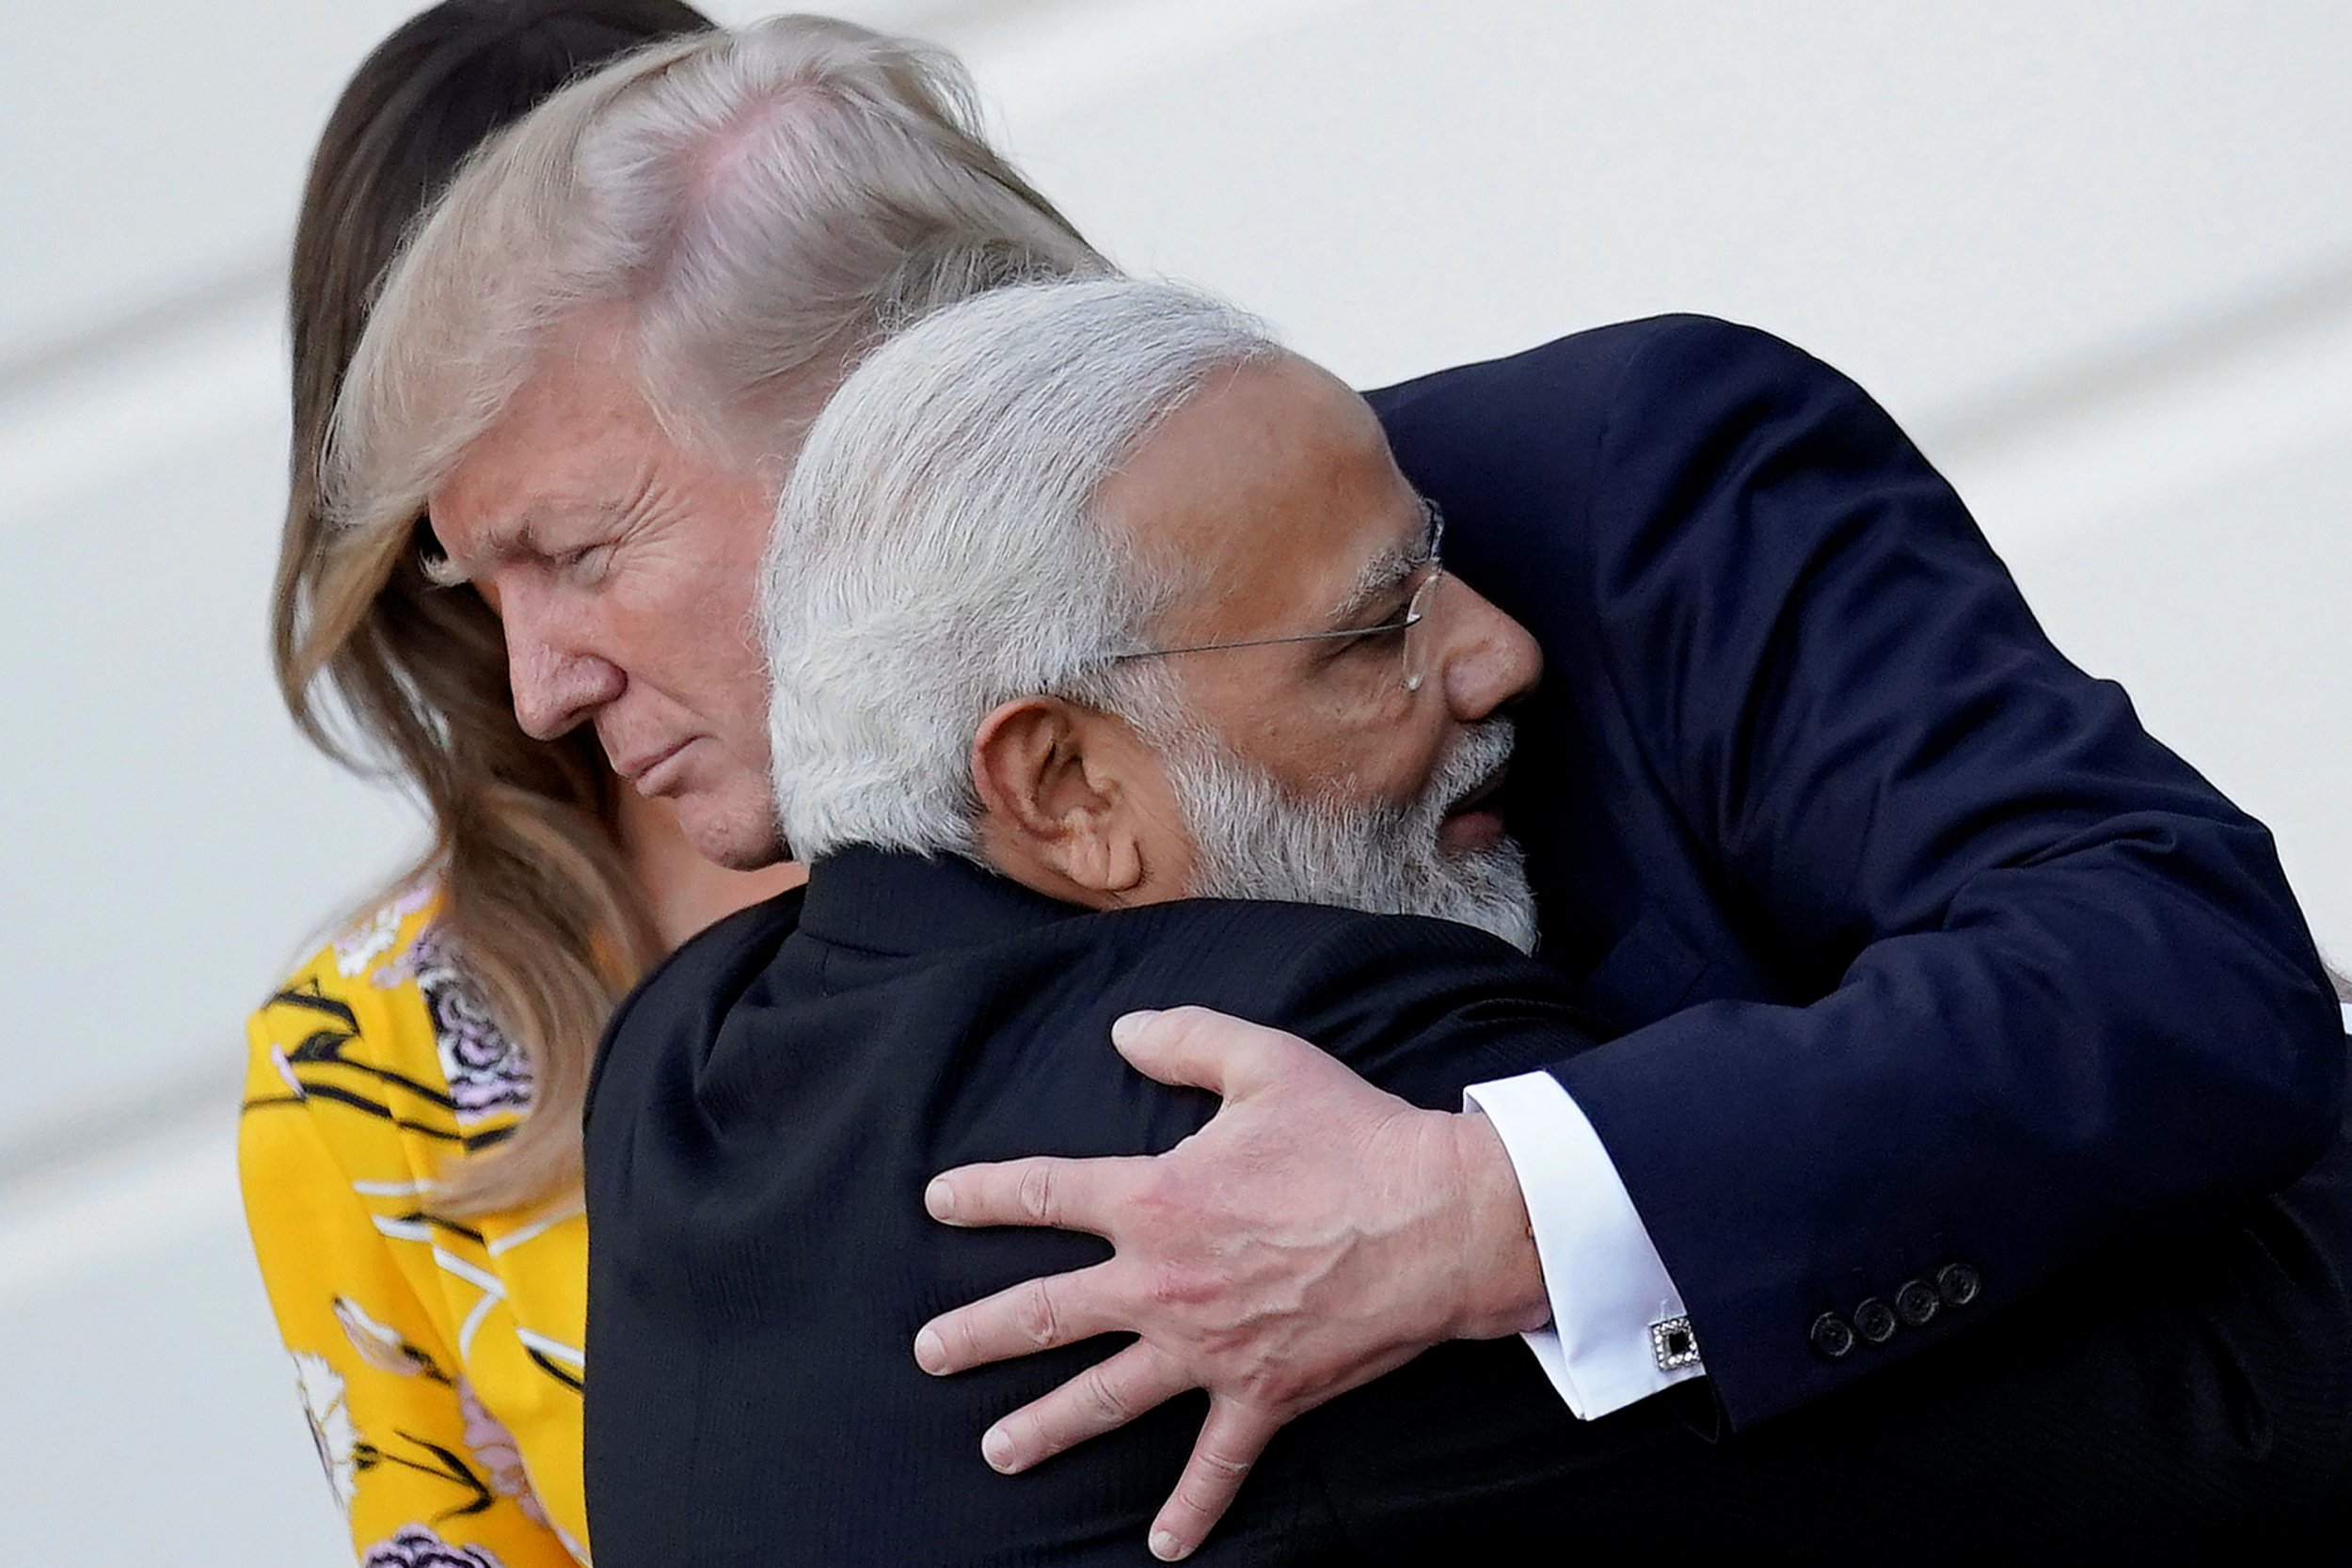 Video of Indian PM bear-hugging Trump like a small child is magical